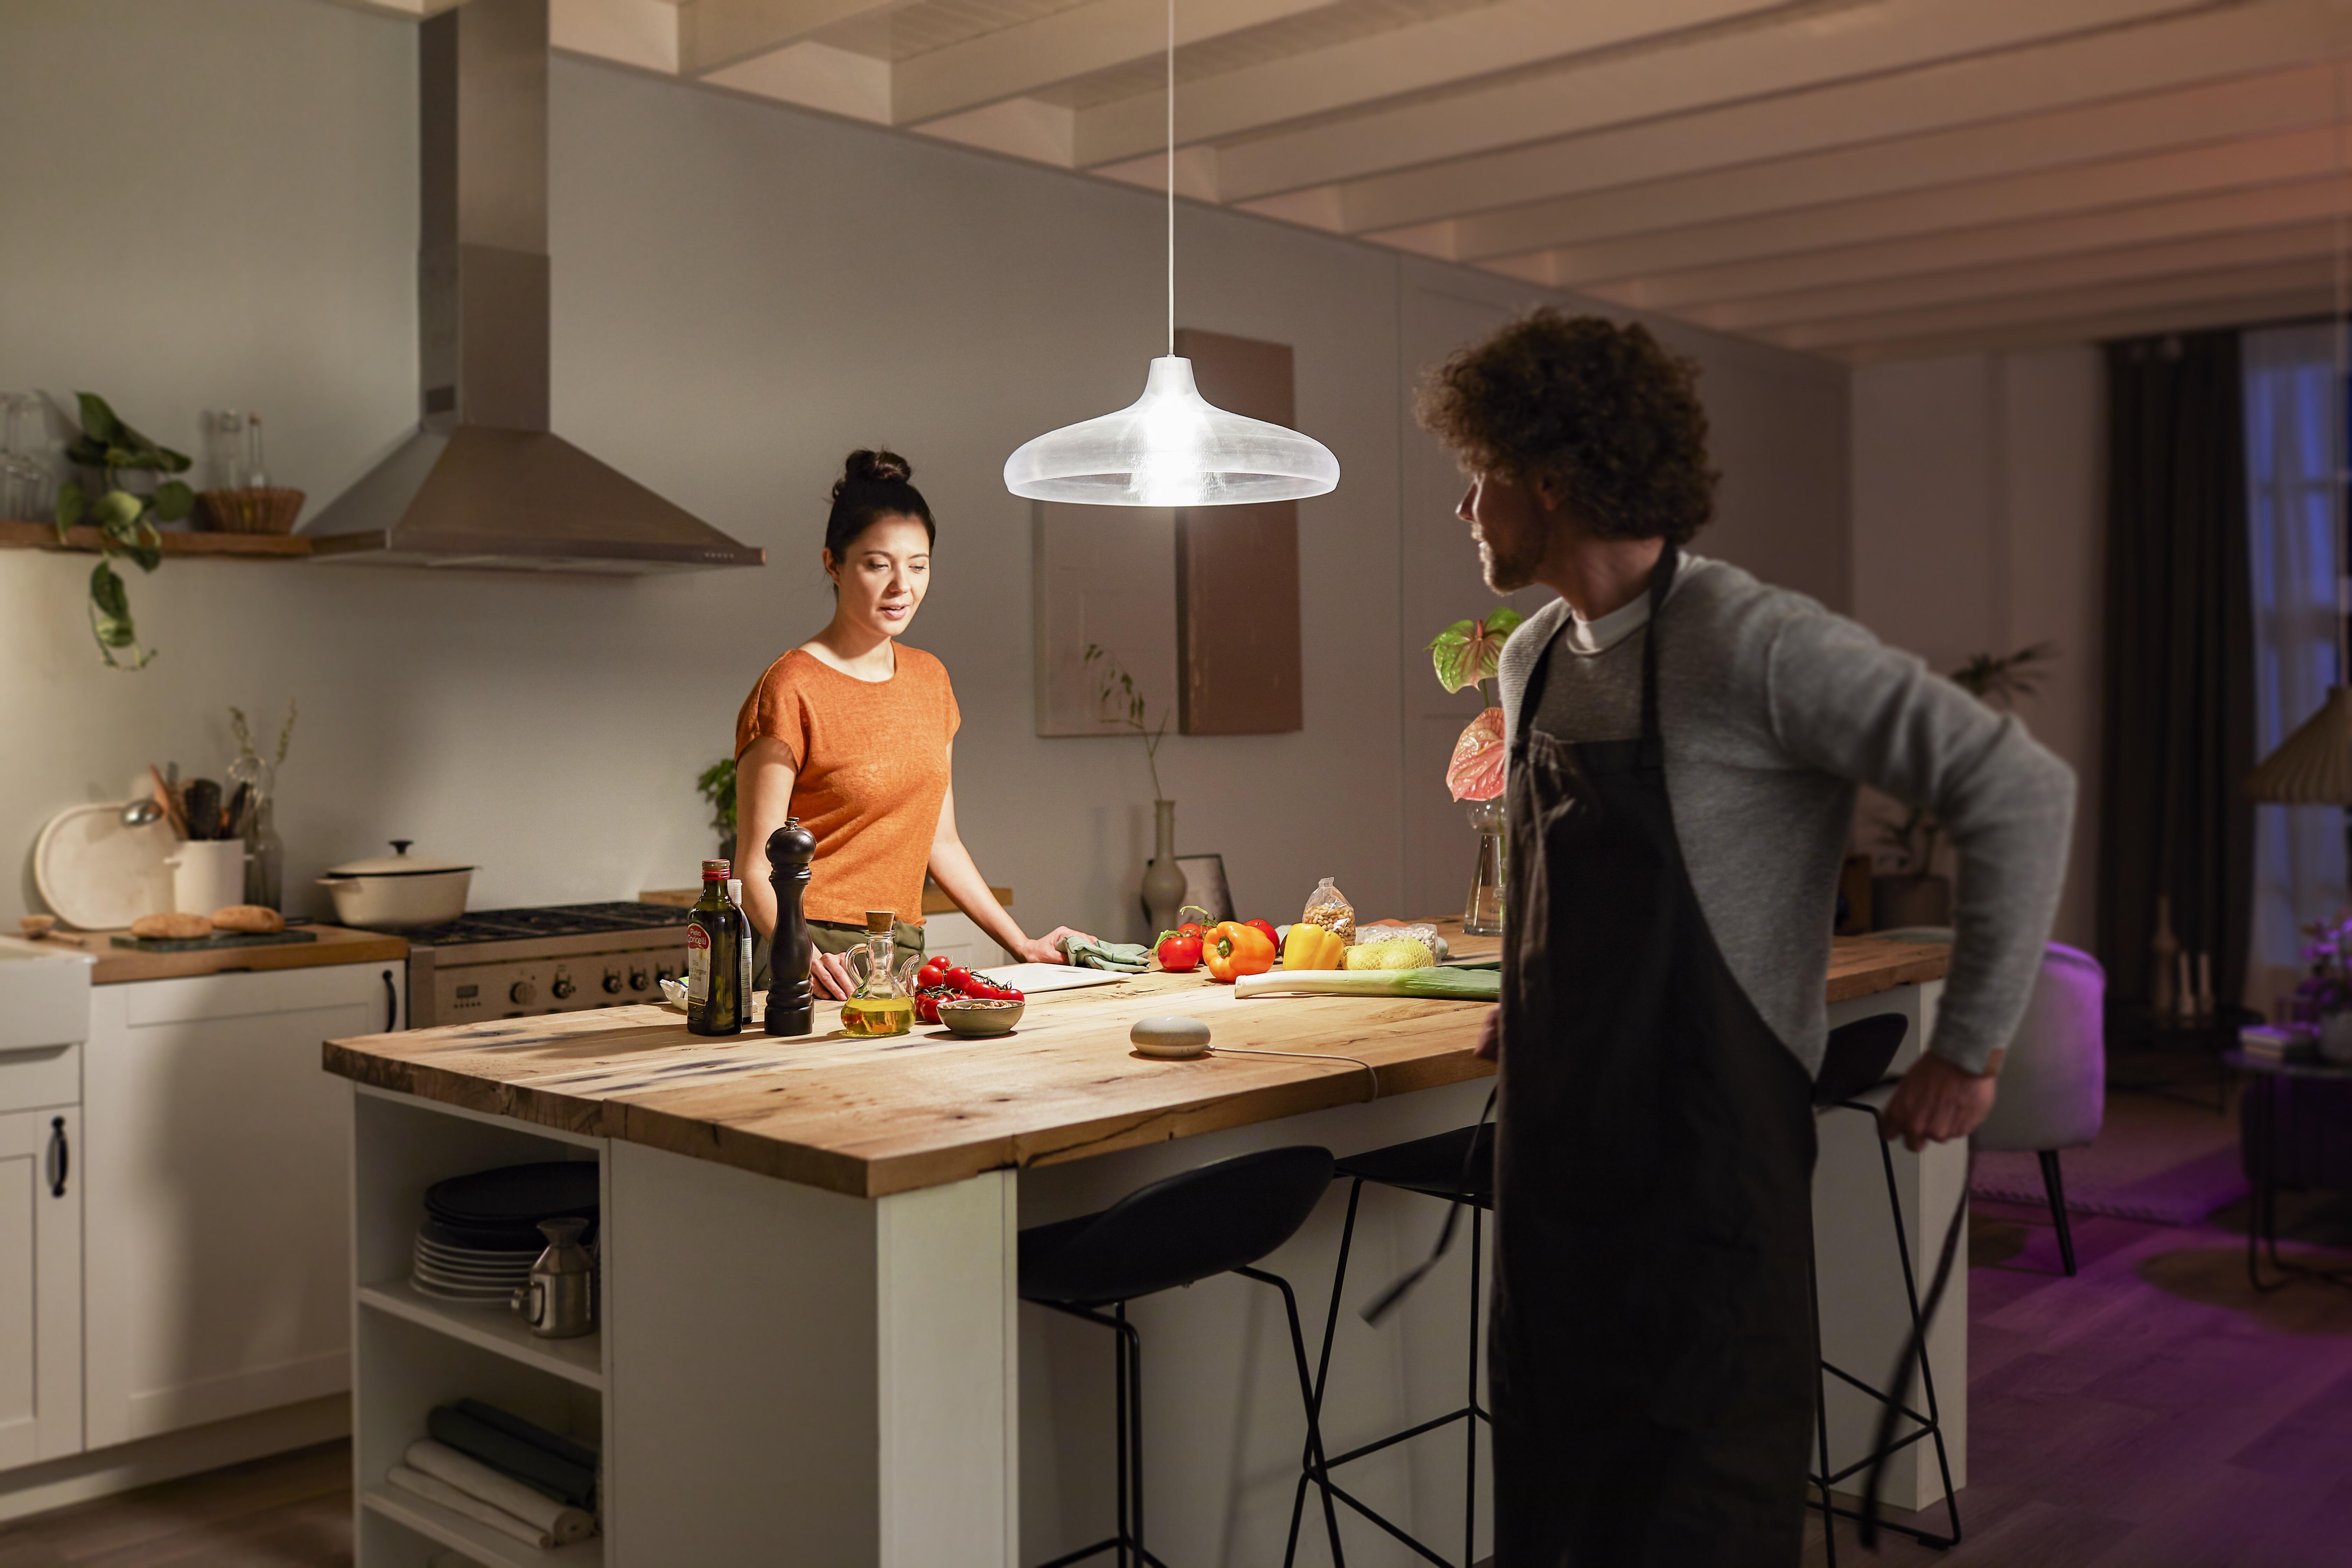 philips-hue-100w-replacement-led-promo